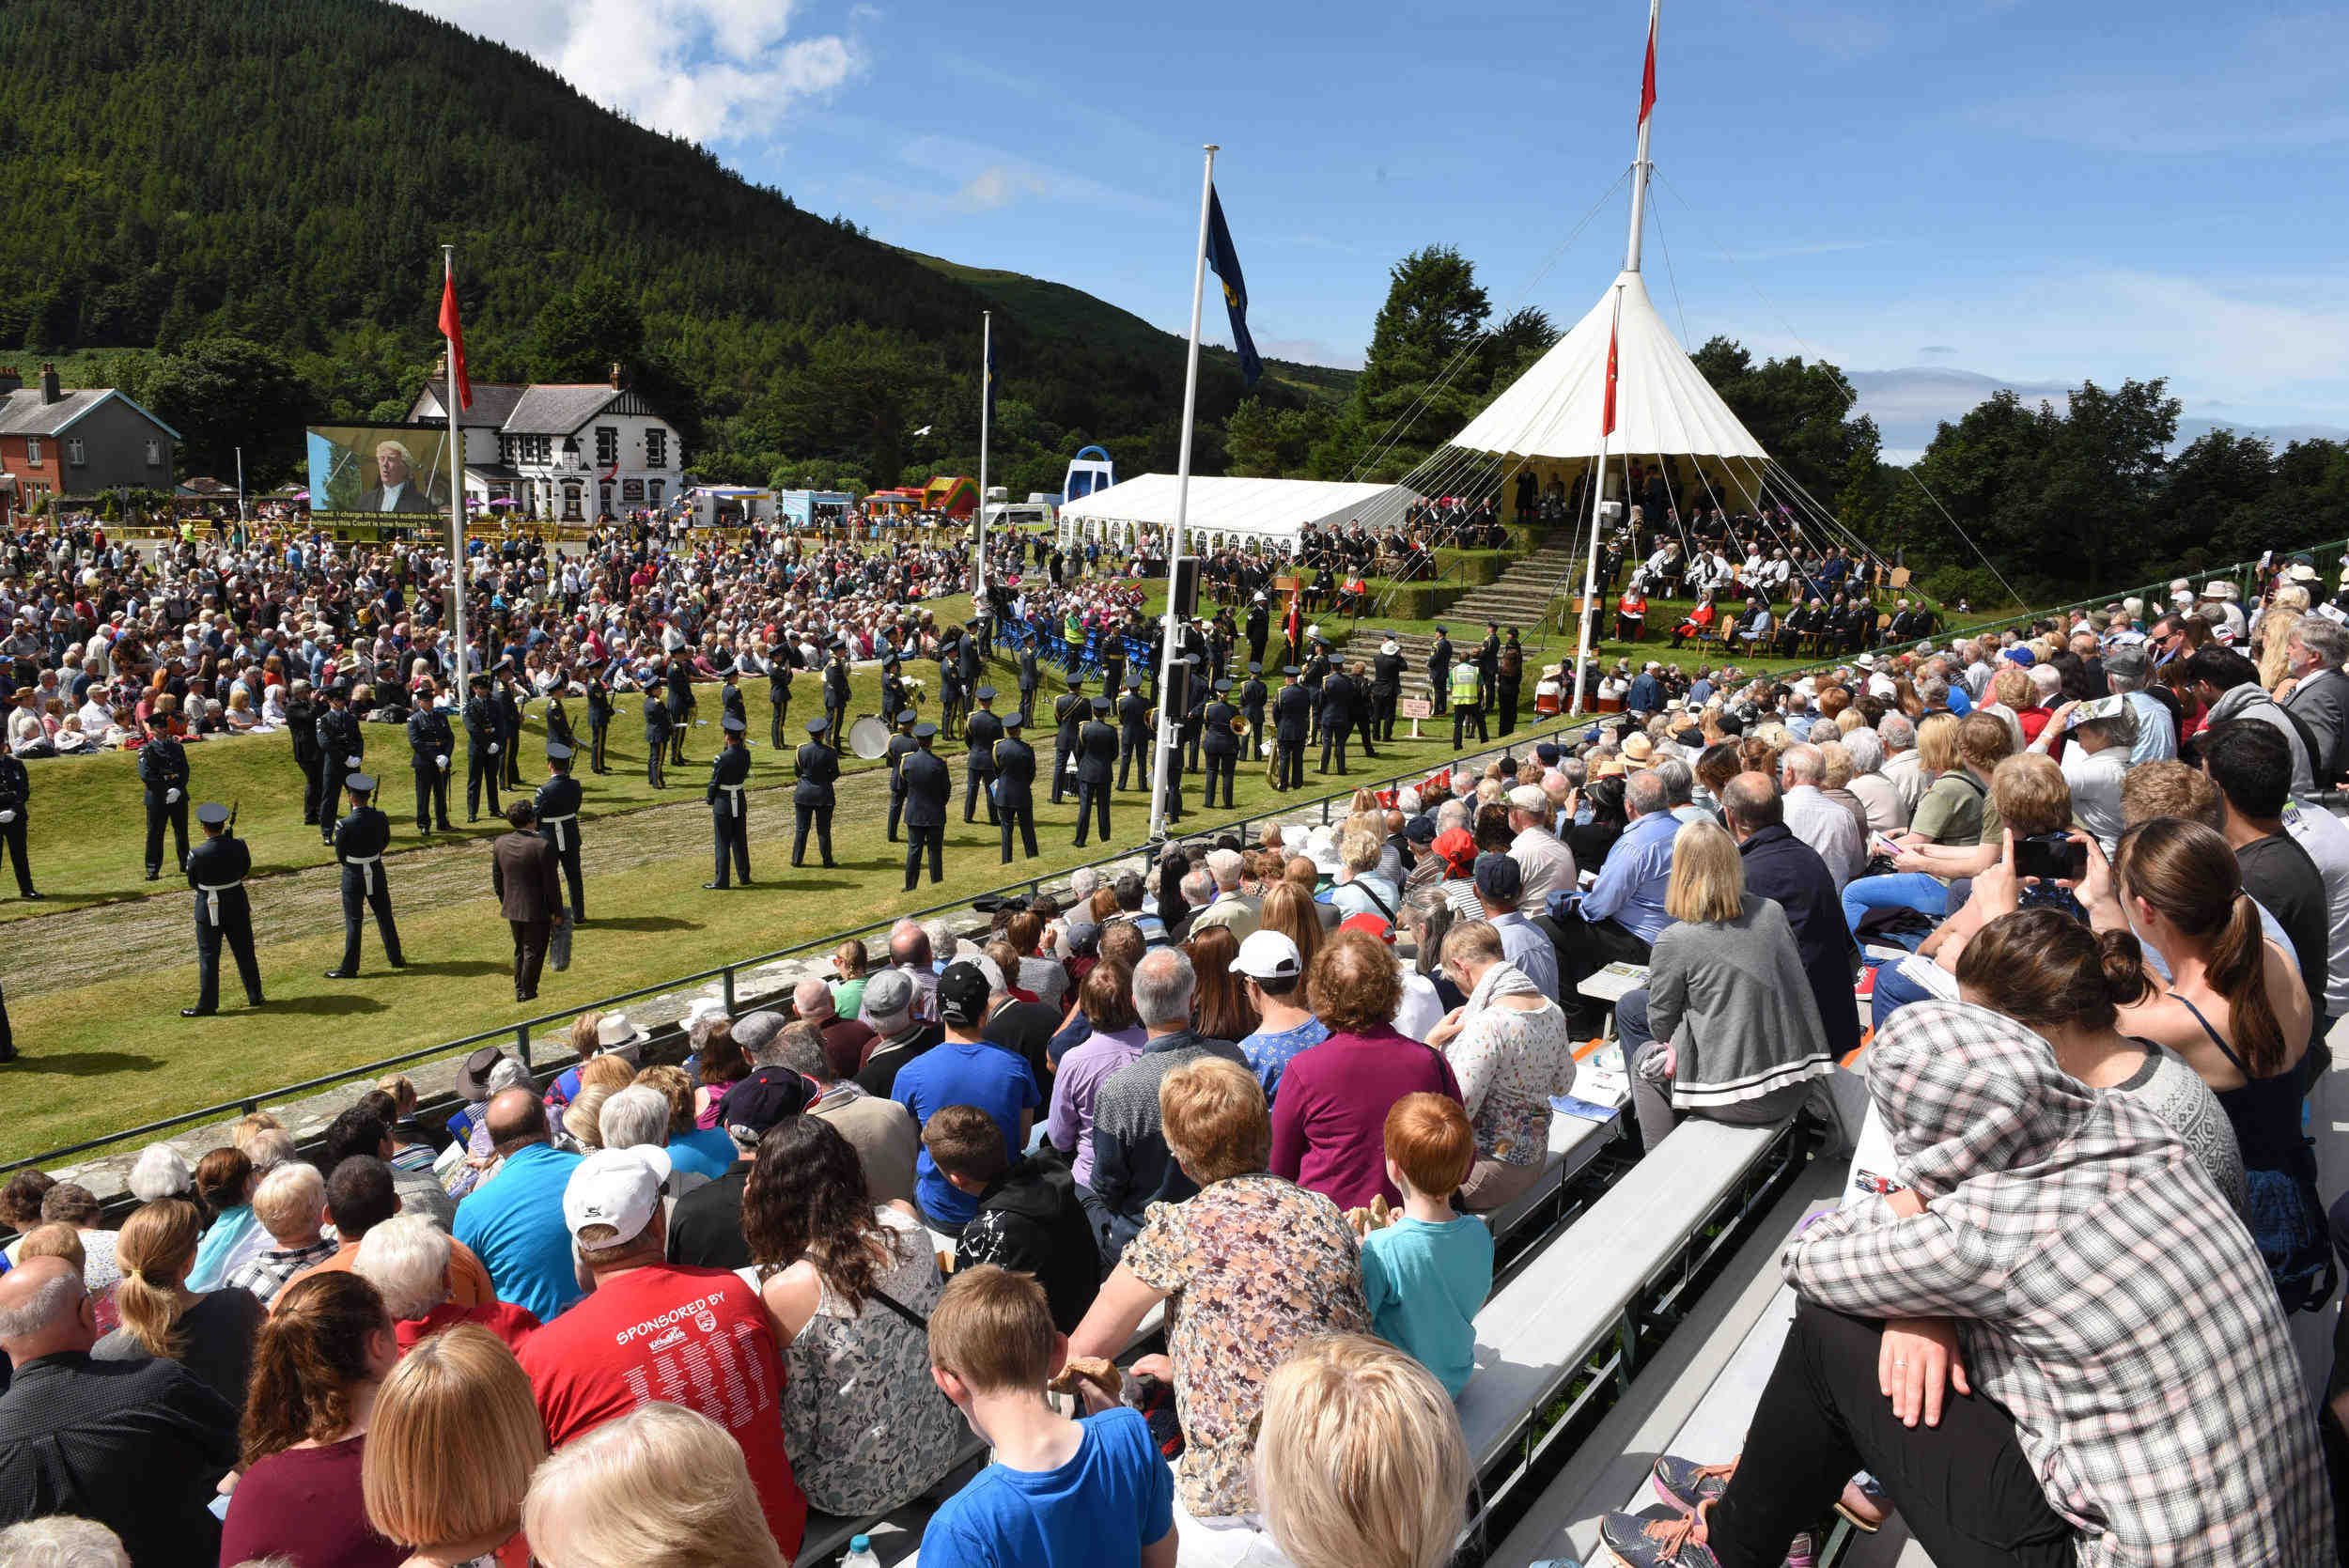 The 2017 Tynwald day ceremonies at St John's